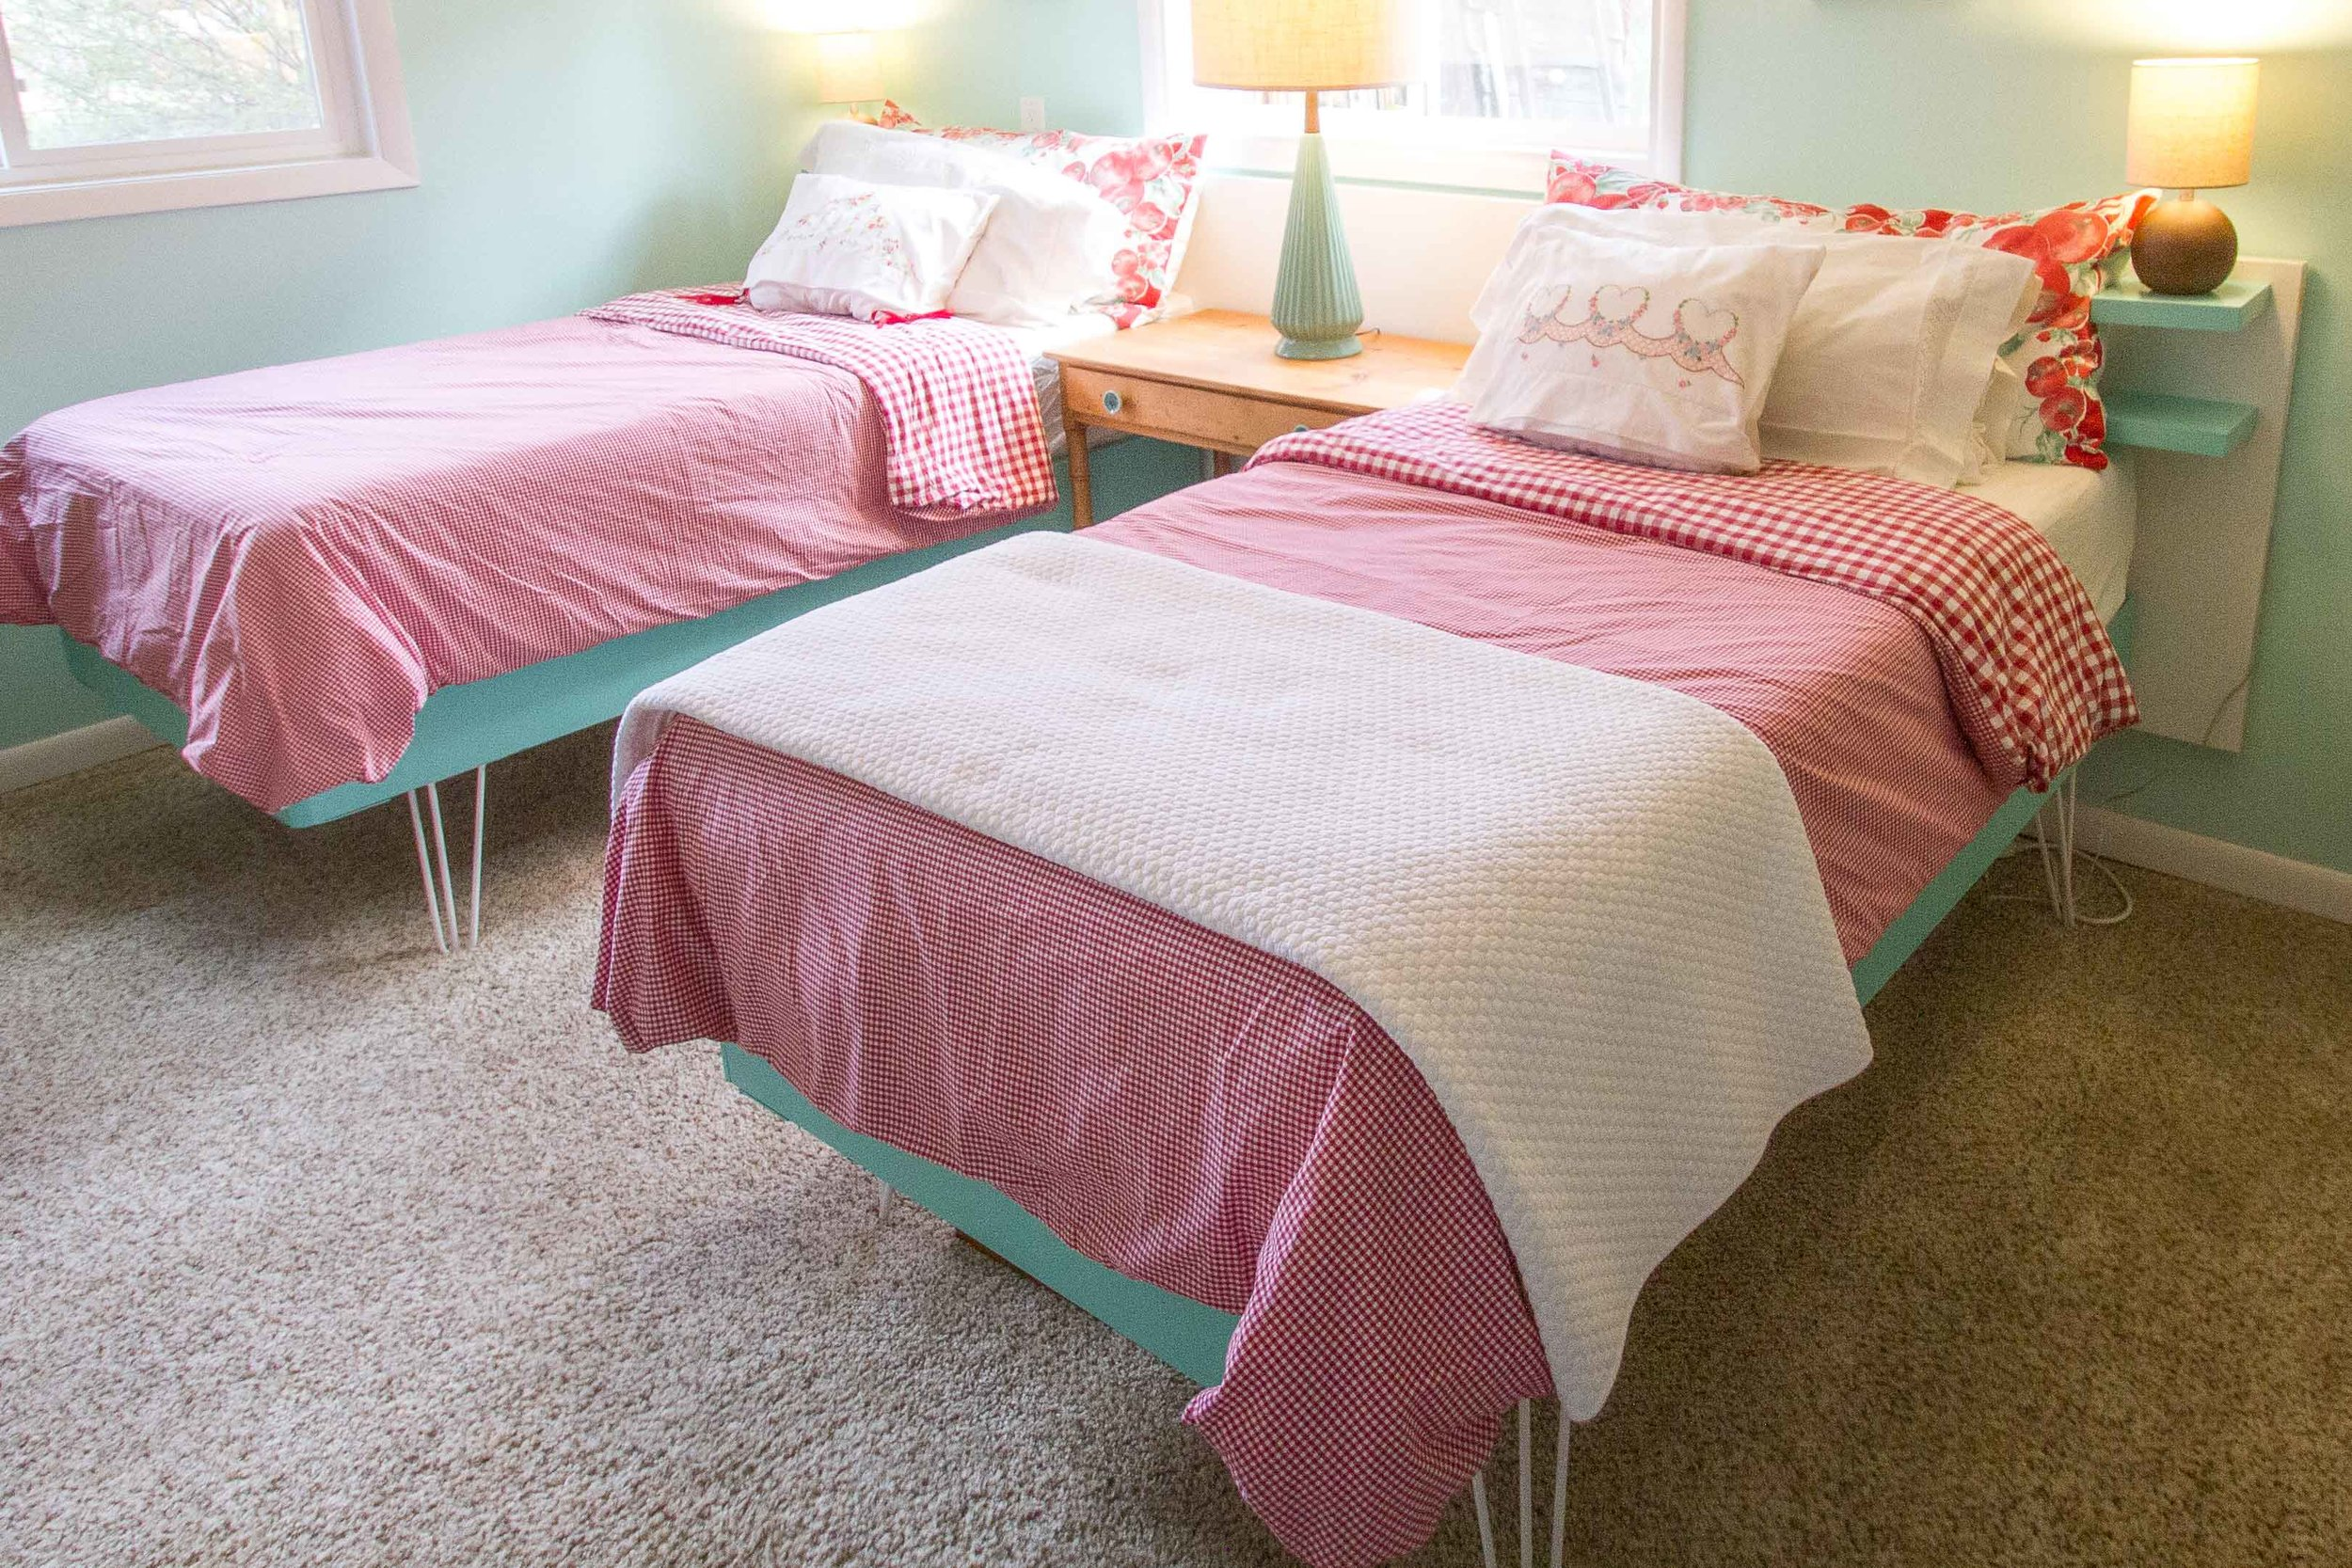 We have two twin beds in our guest room which provides comfortable sleeping arrangements for anyone.